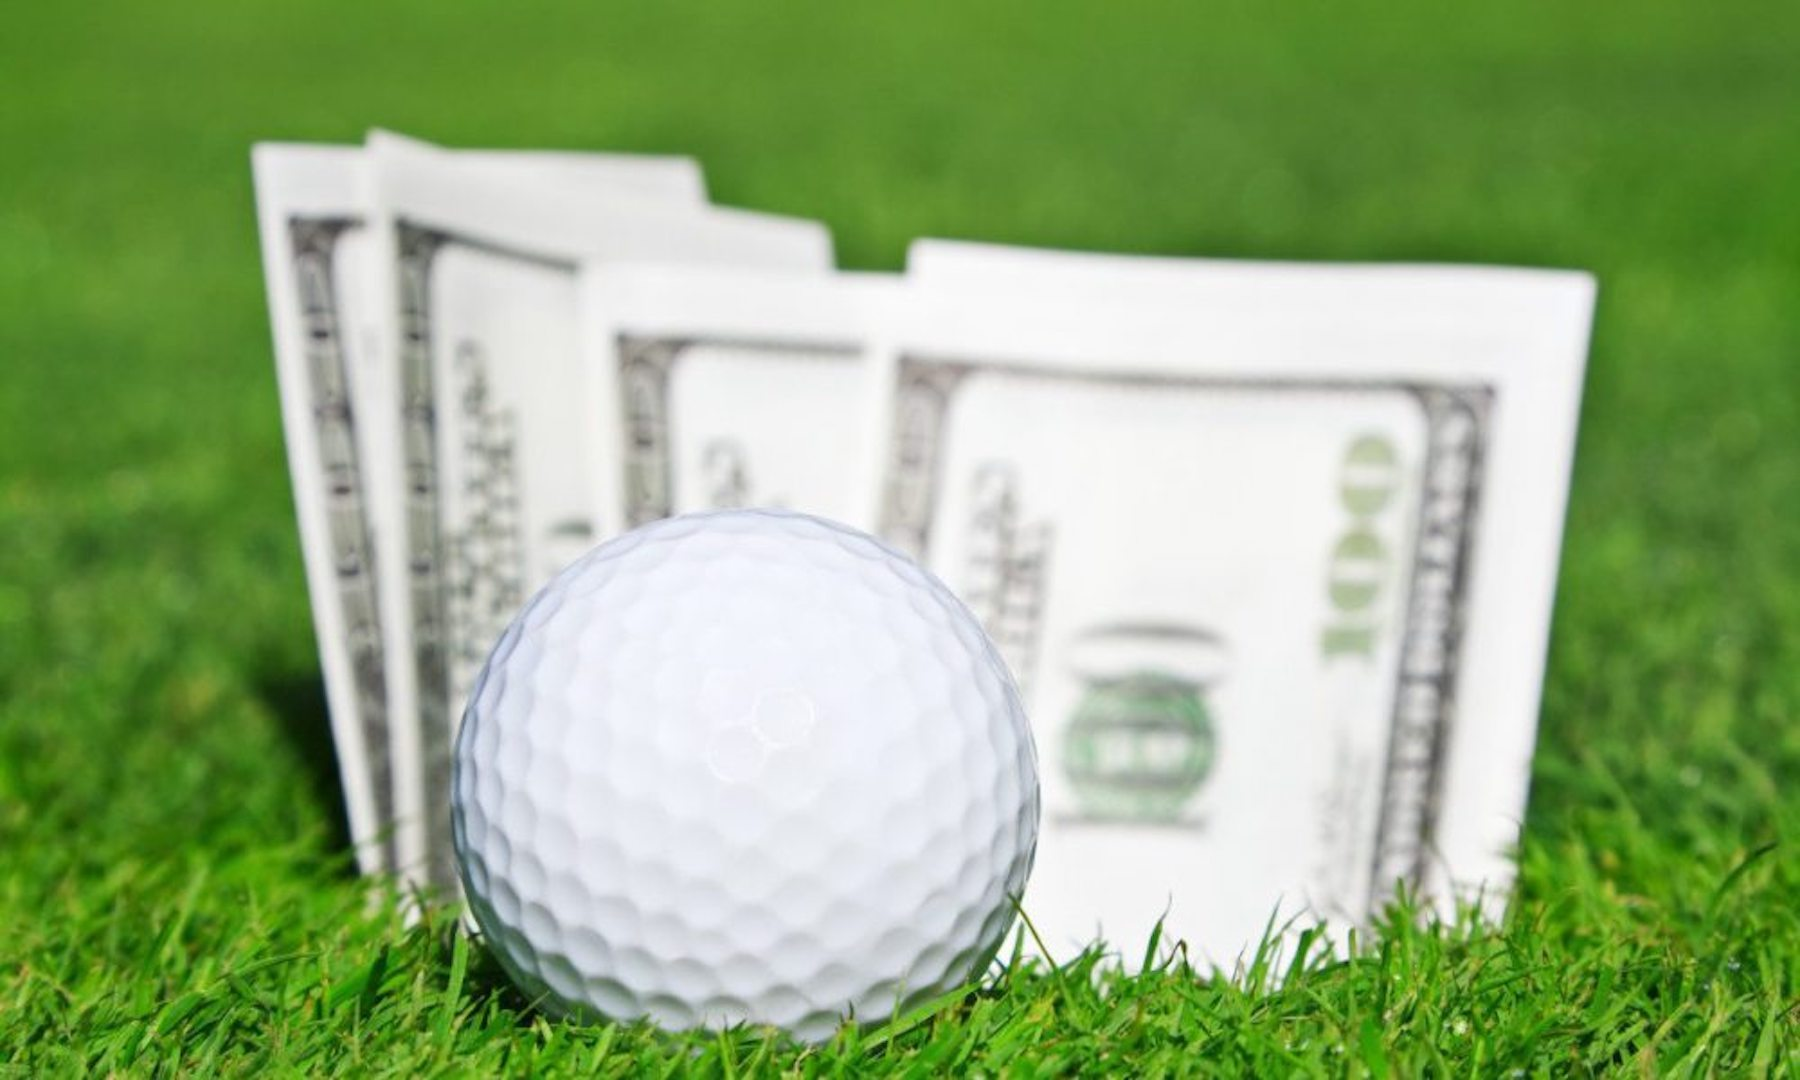 How to win £11K from a £4 golf bet